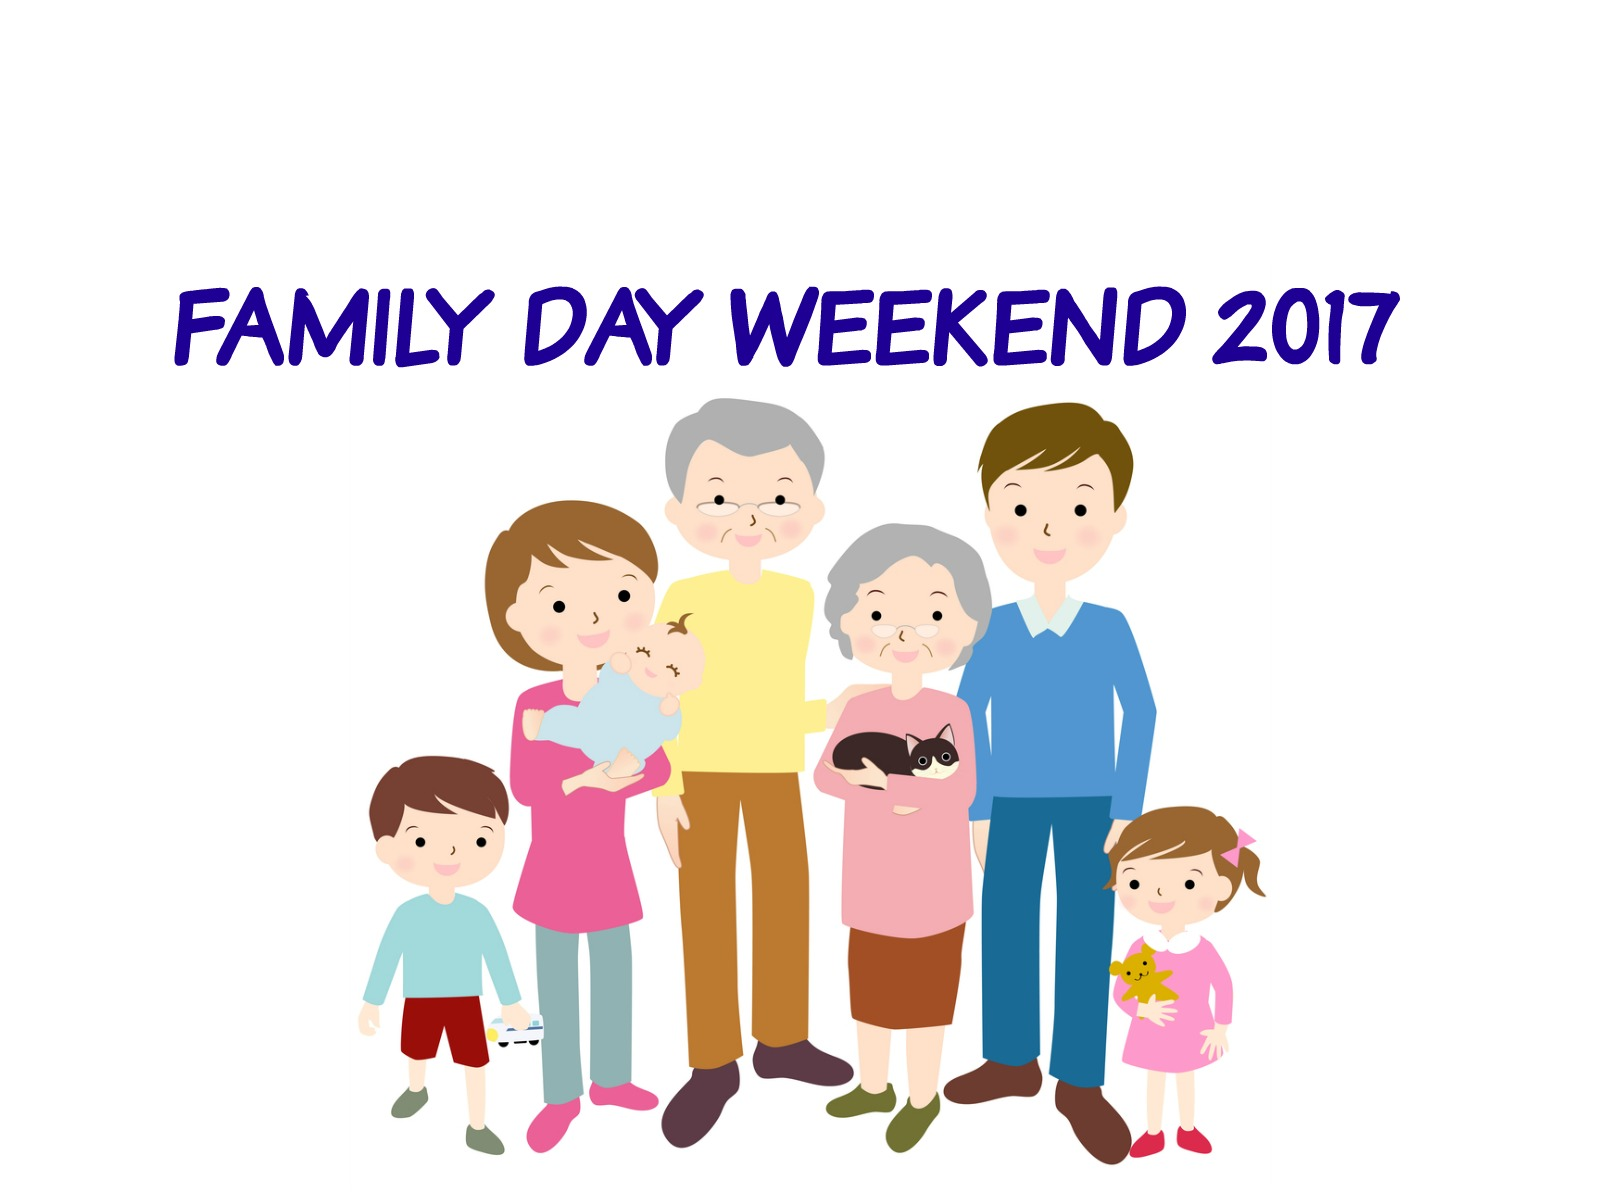 FAMILY DAY WEEKEND 2017